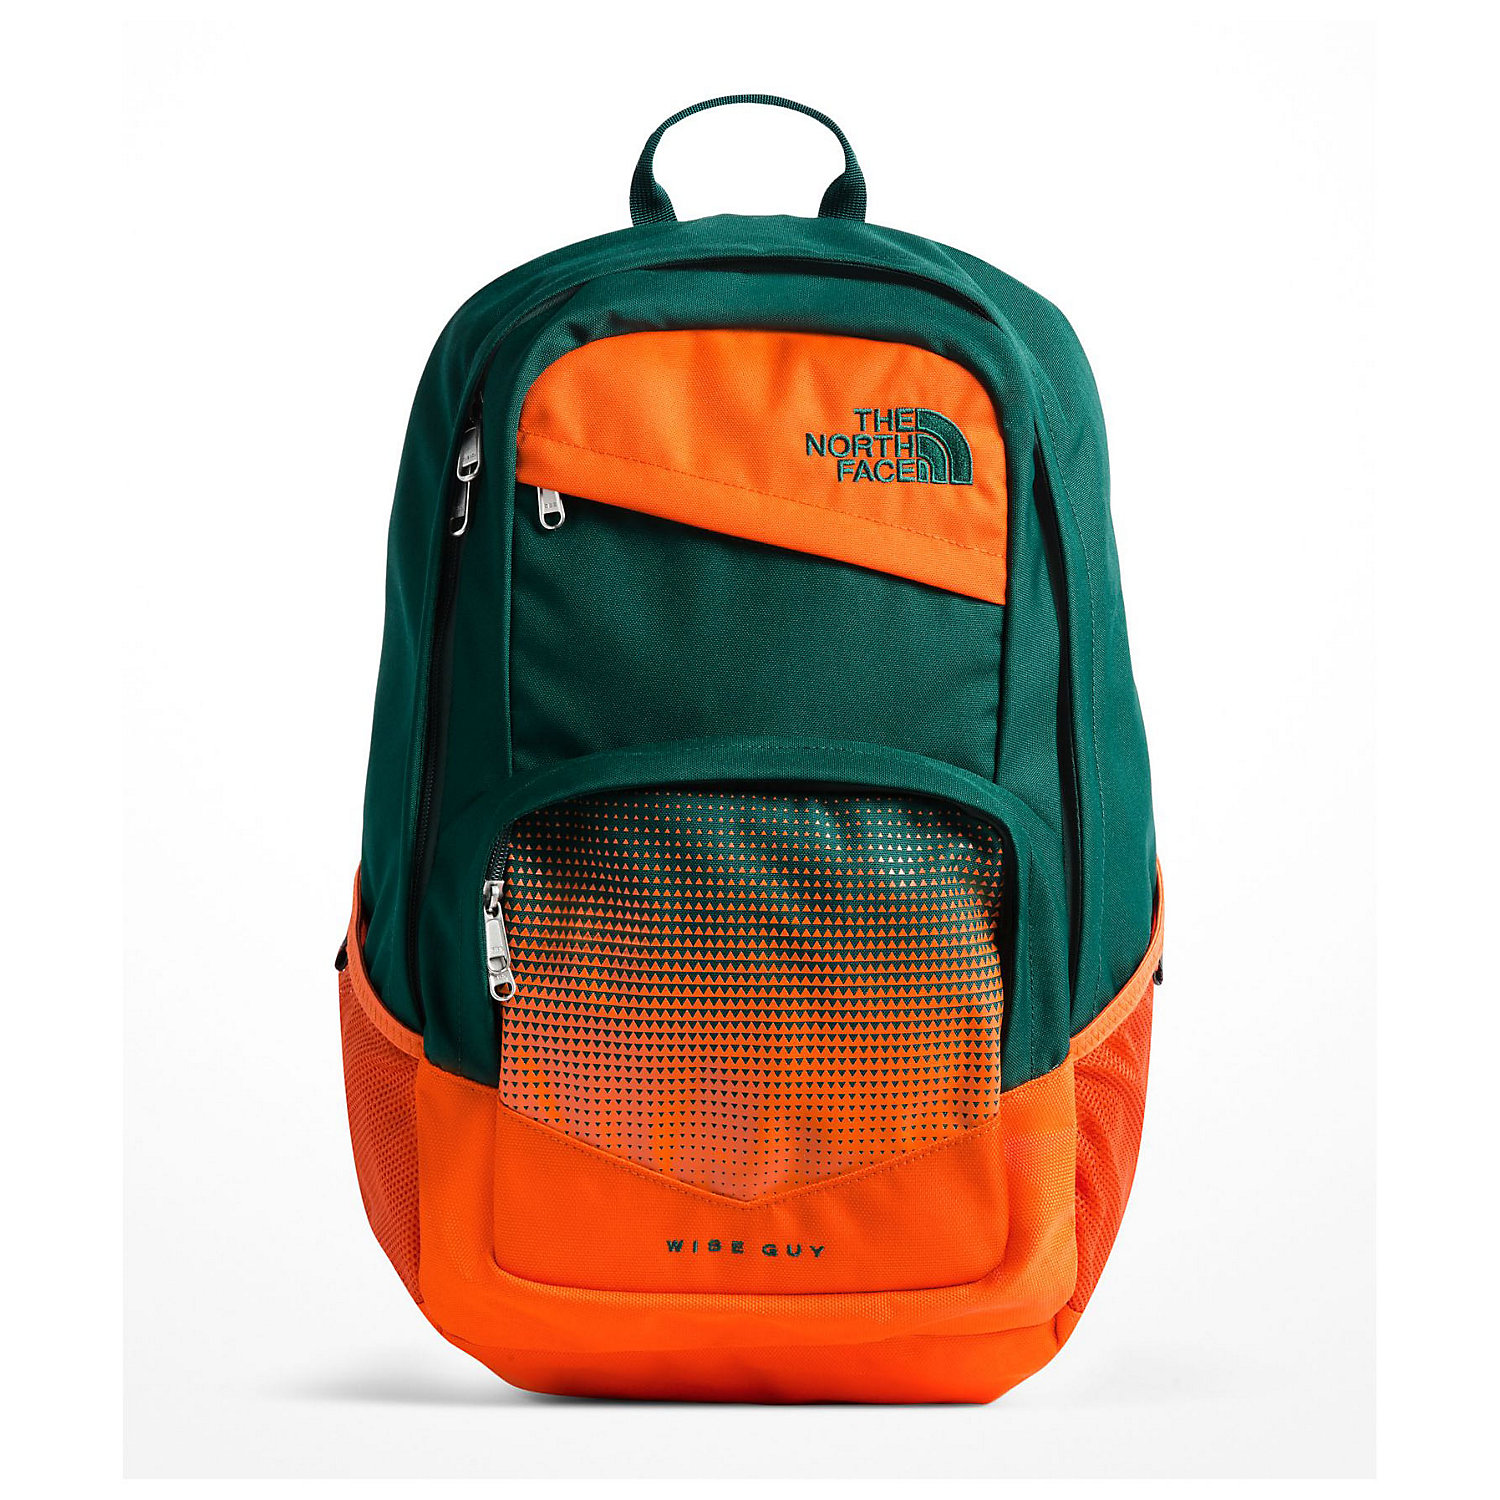 a2ef9867b The North Face Wise Guy Backpack